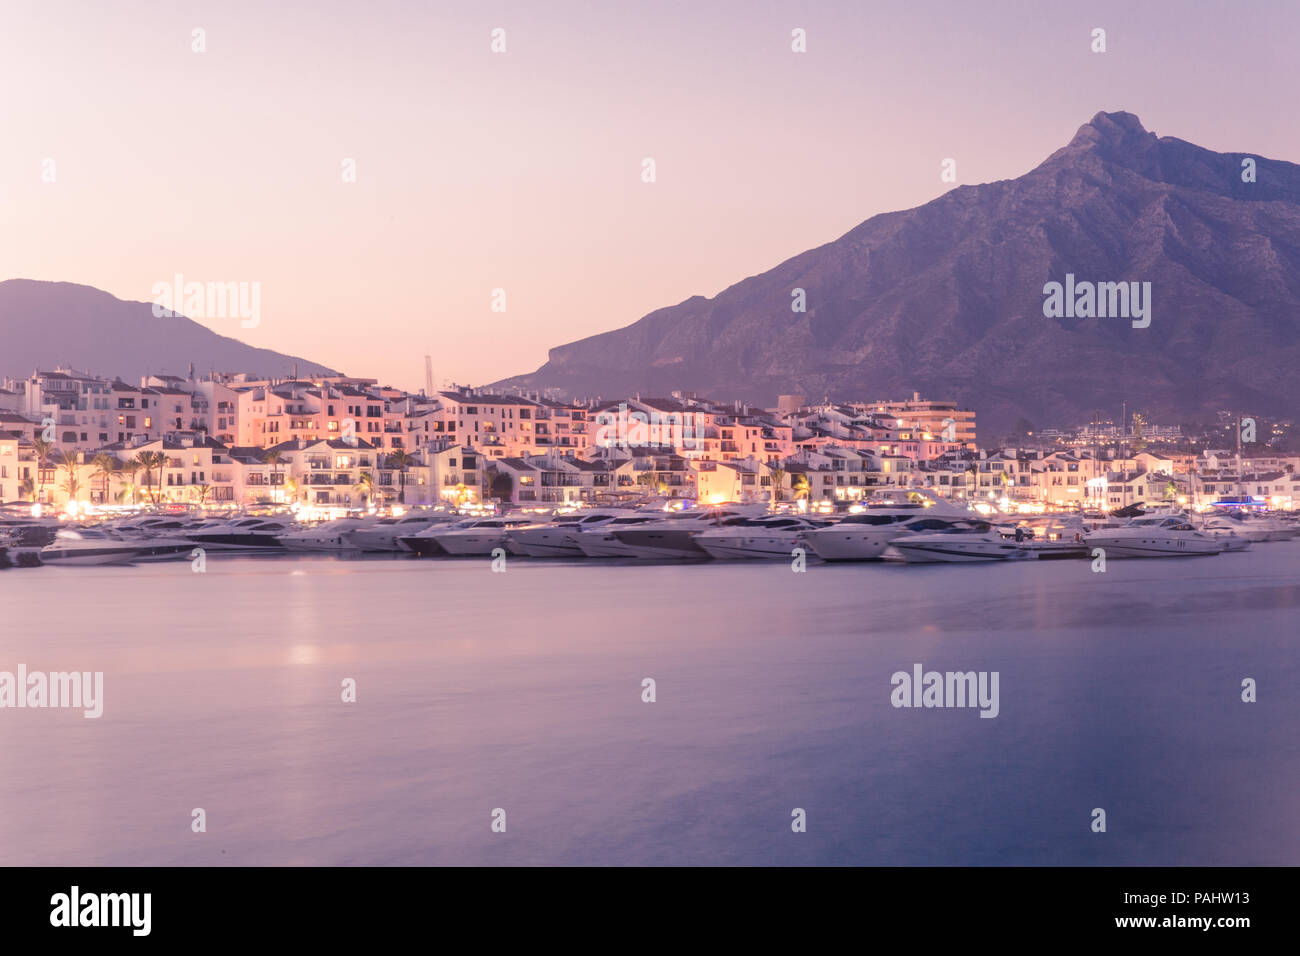 The Yacht Harbour of Puerto Banus, Andalucia, Spain on a hot summer evening. Stock Photo